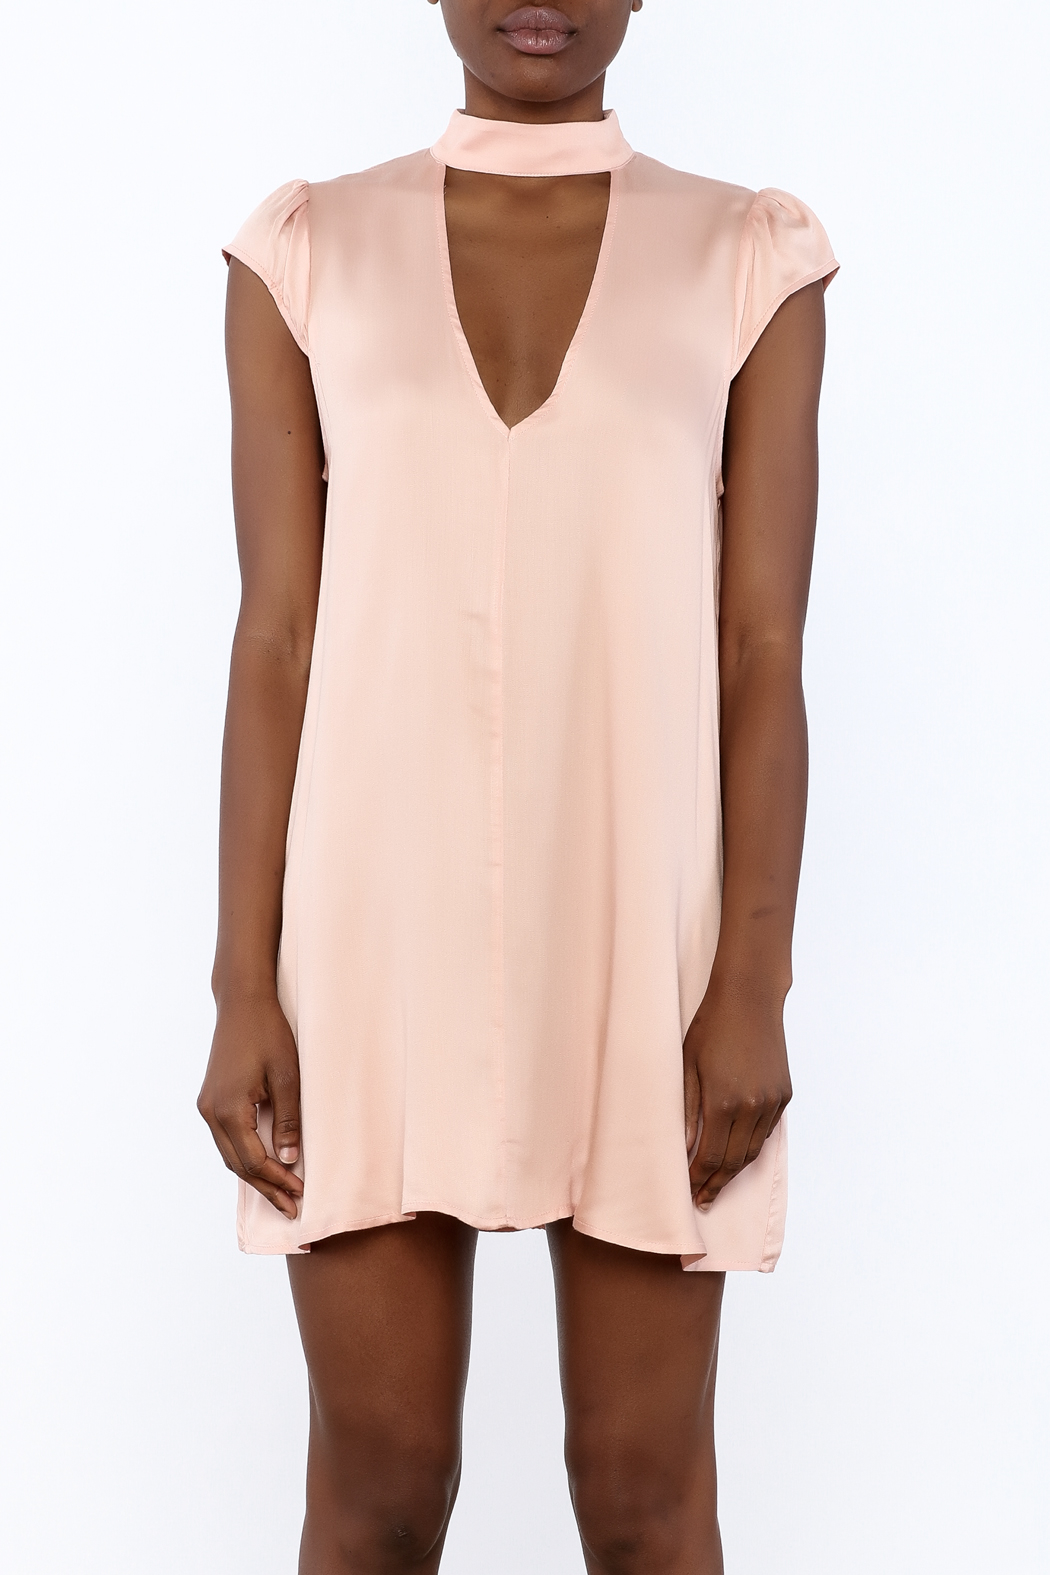 Cotton Candy Lucky Peach Dress - Side Cropped Image